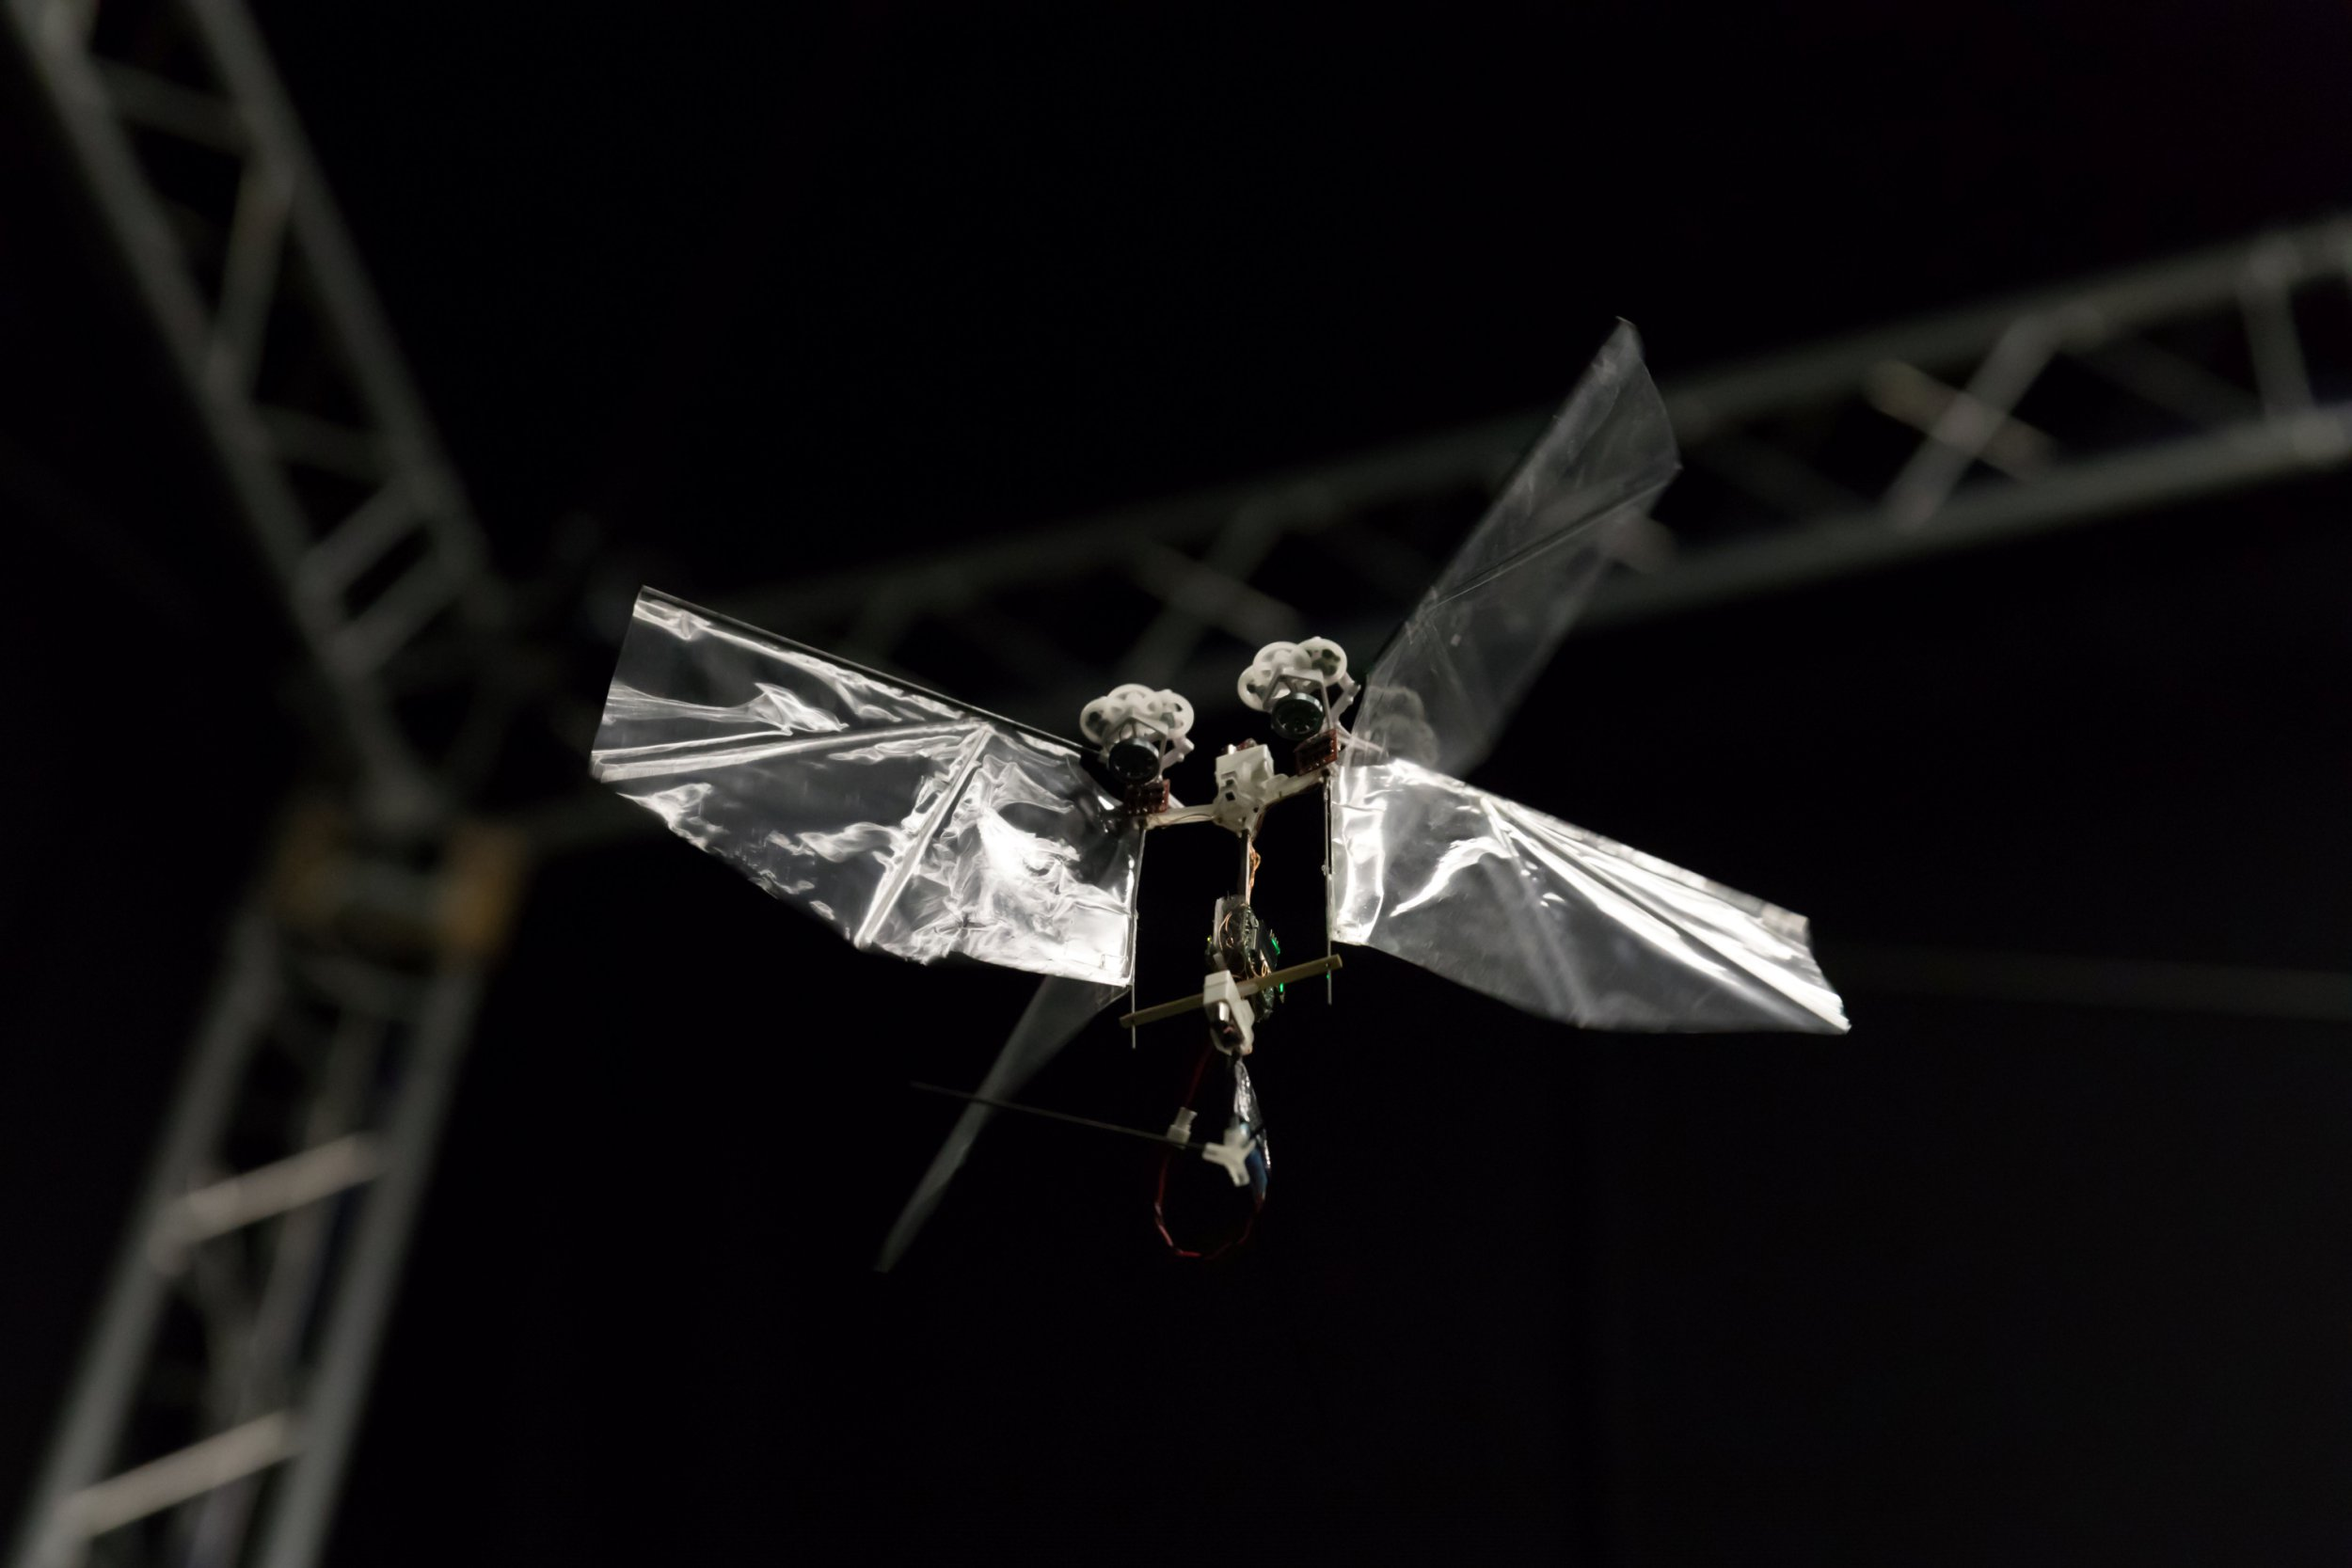 "The Delfly Nimble in flight. Embargoed 19:00 BST Thursday (13-SEP-2018 14:00 ET) A flying robot with flapping wings that can dart through the air like an insect has been unveiled by scientists. See story NNROBOT. It can hover, dart left or right and even do a loop the loop or barrel roll. Like a real insect, the wings beat at 17 times per second to provide lift and can speed along at over 15 miles an hour. Developed by Dutch scientists, DelFly Nimble is based on the fruit fly and promises to revolutionise drone design and our understanding of insect flight. The first autonomous, free-flying and agile flapping-wing robot was developed by TU Delft researchers from the Micro Air Vehicle Laboratory (MAVLab), in collaboration with Wageningen University & Research. It is so far unmatched in its performance, and yet has a simple and easy-to-produce design. Its flapping wing not only generate the lift force needed to stay airborne but also control the flight via minor adjustments in the wing motion. The control mechanisms have proved to be highly effective, allowing it not only to hover on the spot and fly in any direction but also be very agile like the fruit fly despite being more than 55 times larger. First author and main designer of the robot Dr Matej Karasek said: ""The robot has a top speed of 25 km/h and can even perform aggressive manoeuvres, such as 360-degree flips, resembling loops and barrel rolls."